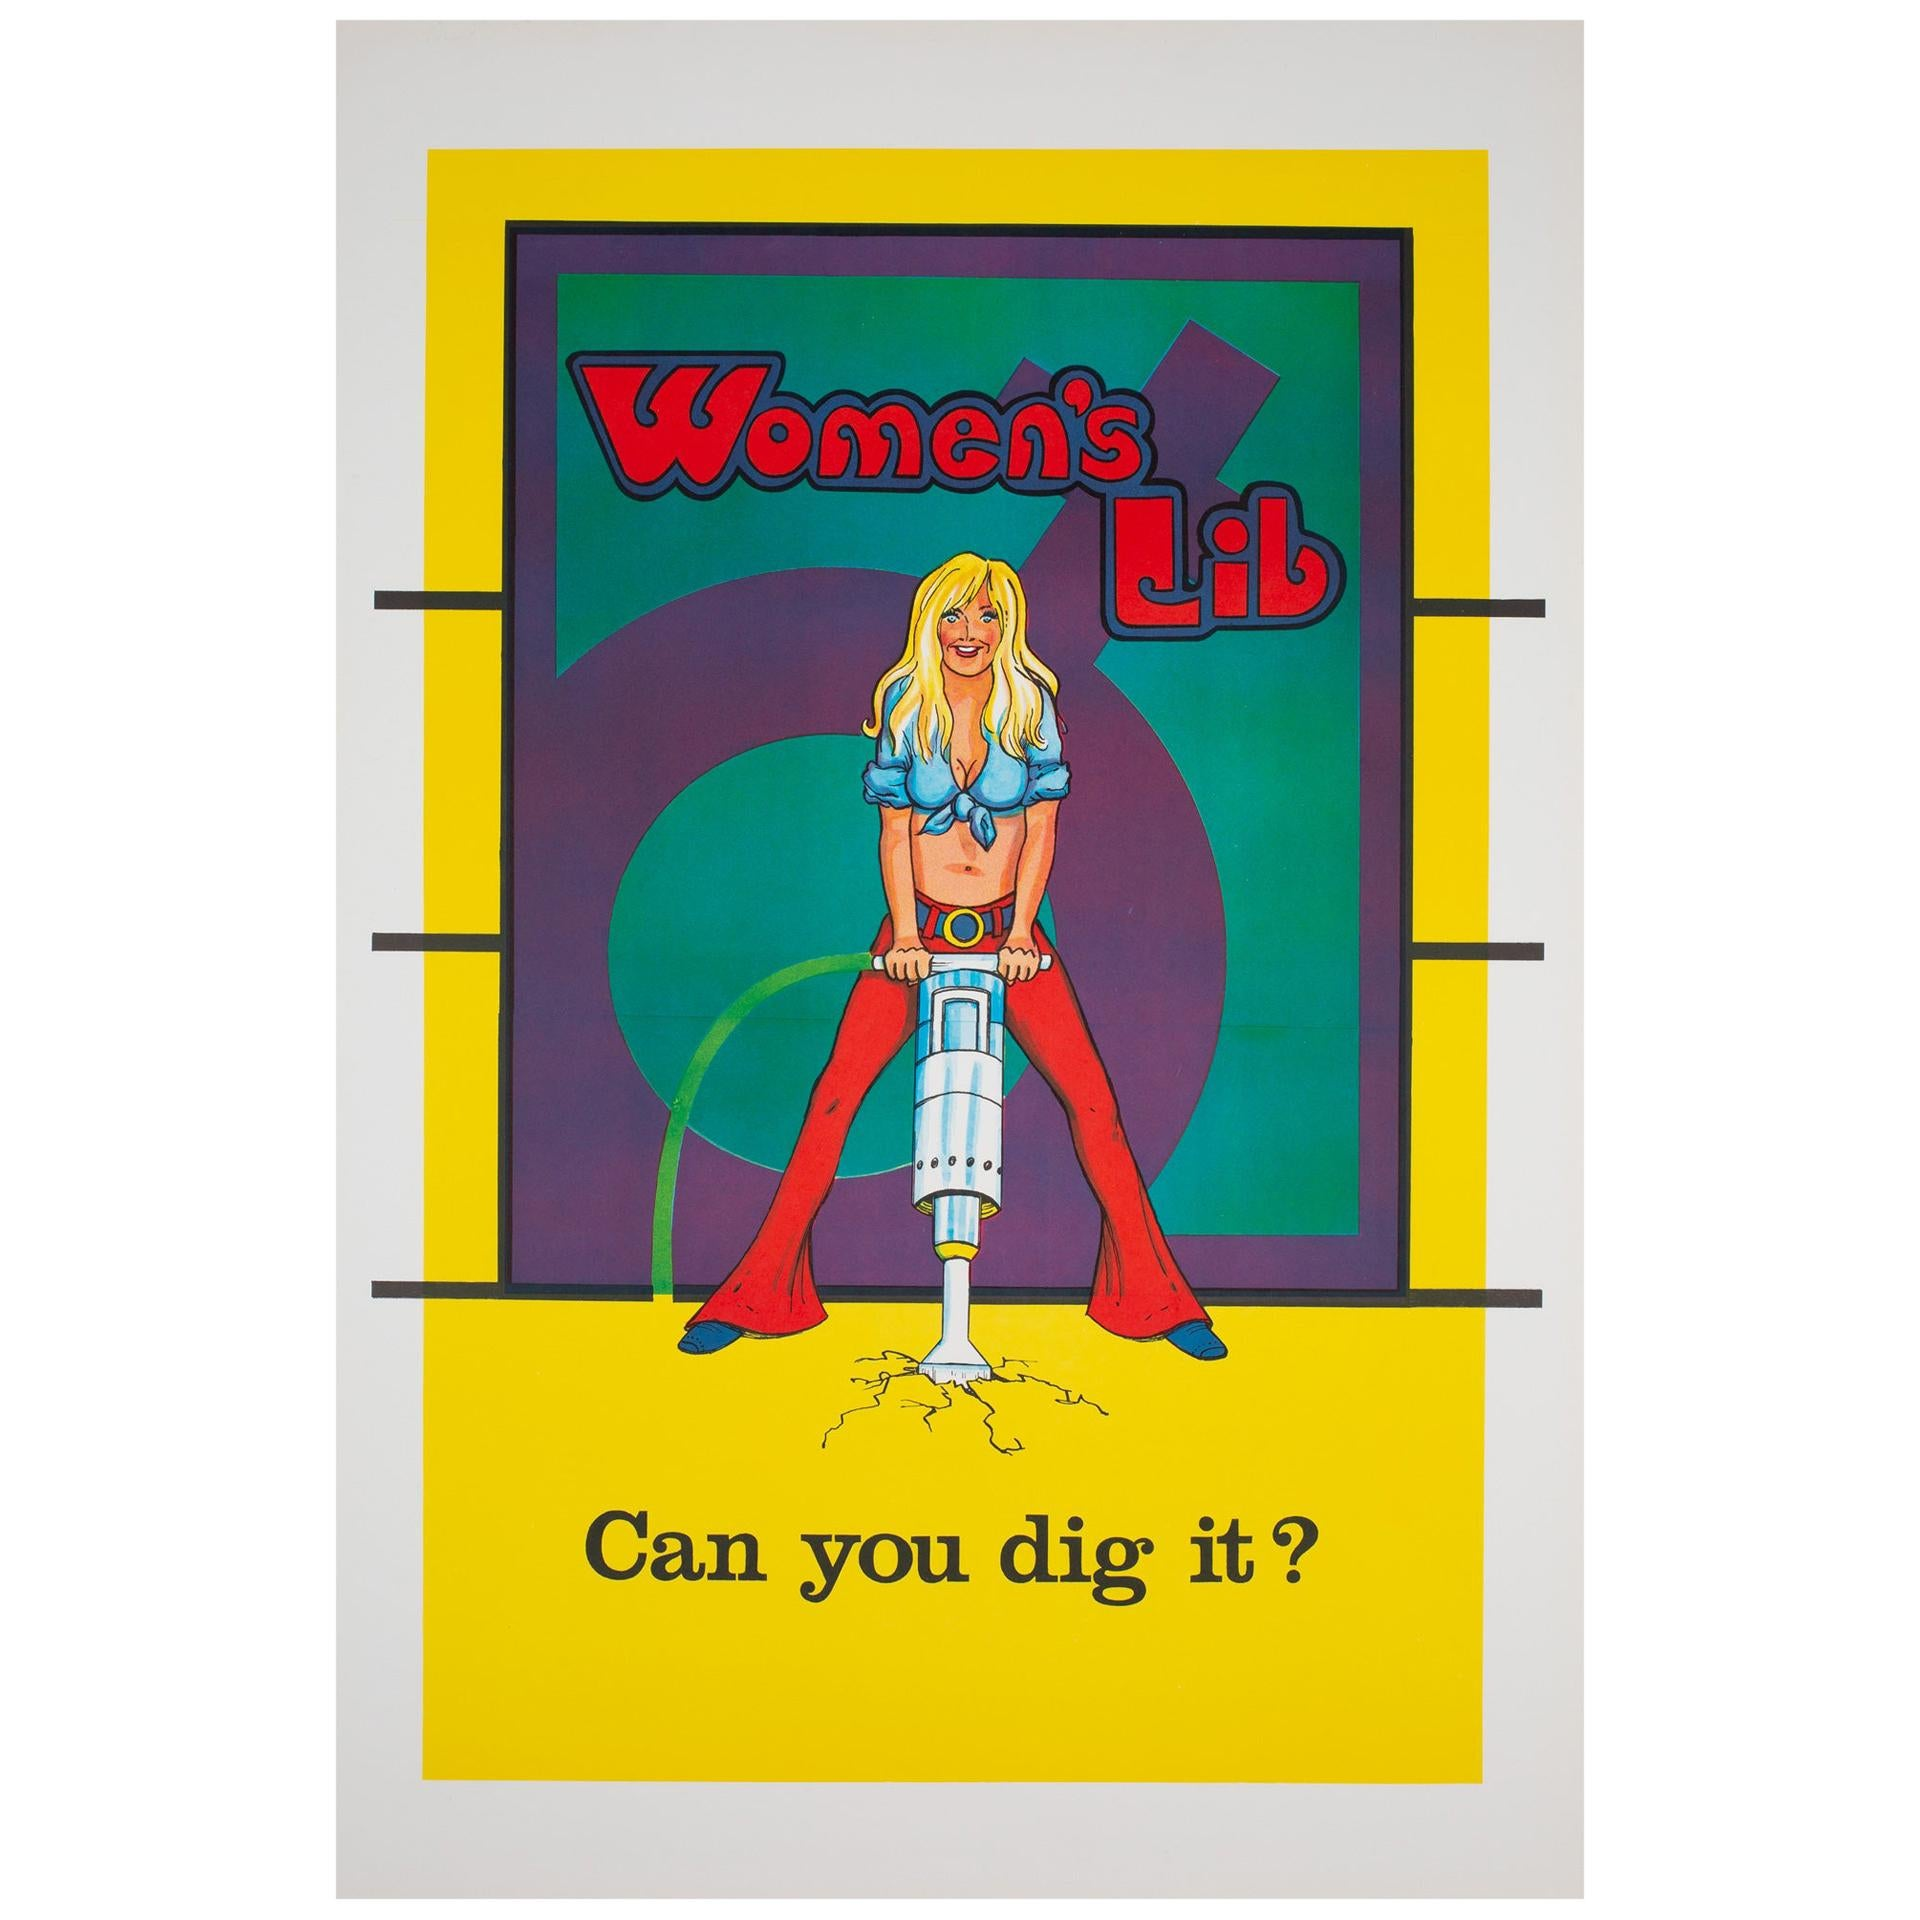 """""""Women's Lib Can You Dig it"""", 1970s American Political/Protest Poster"""